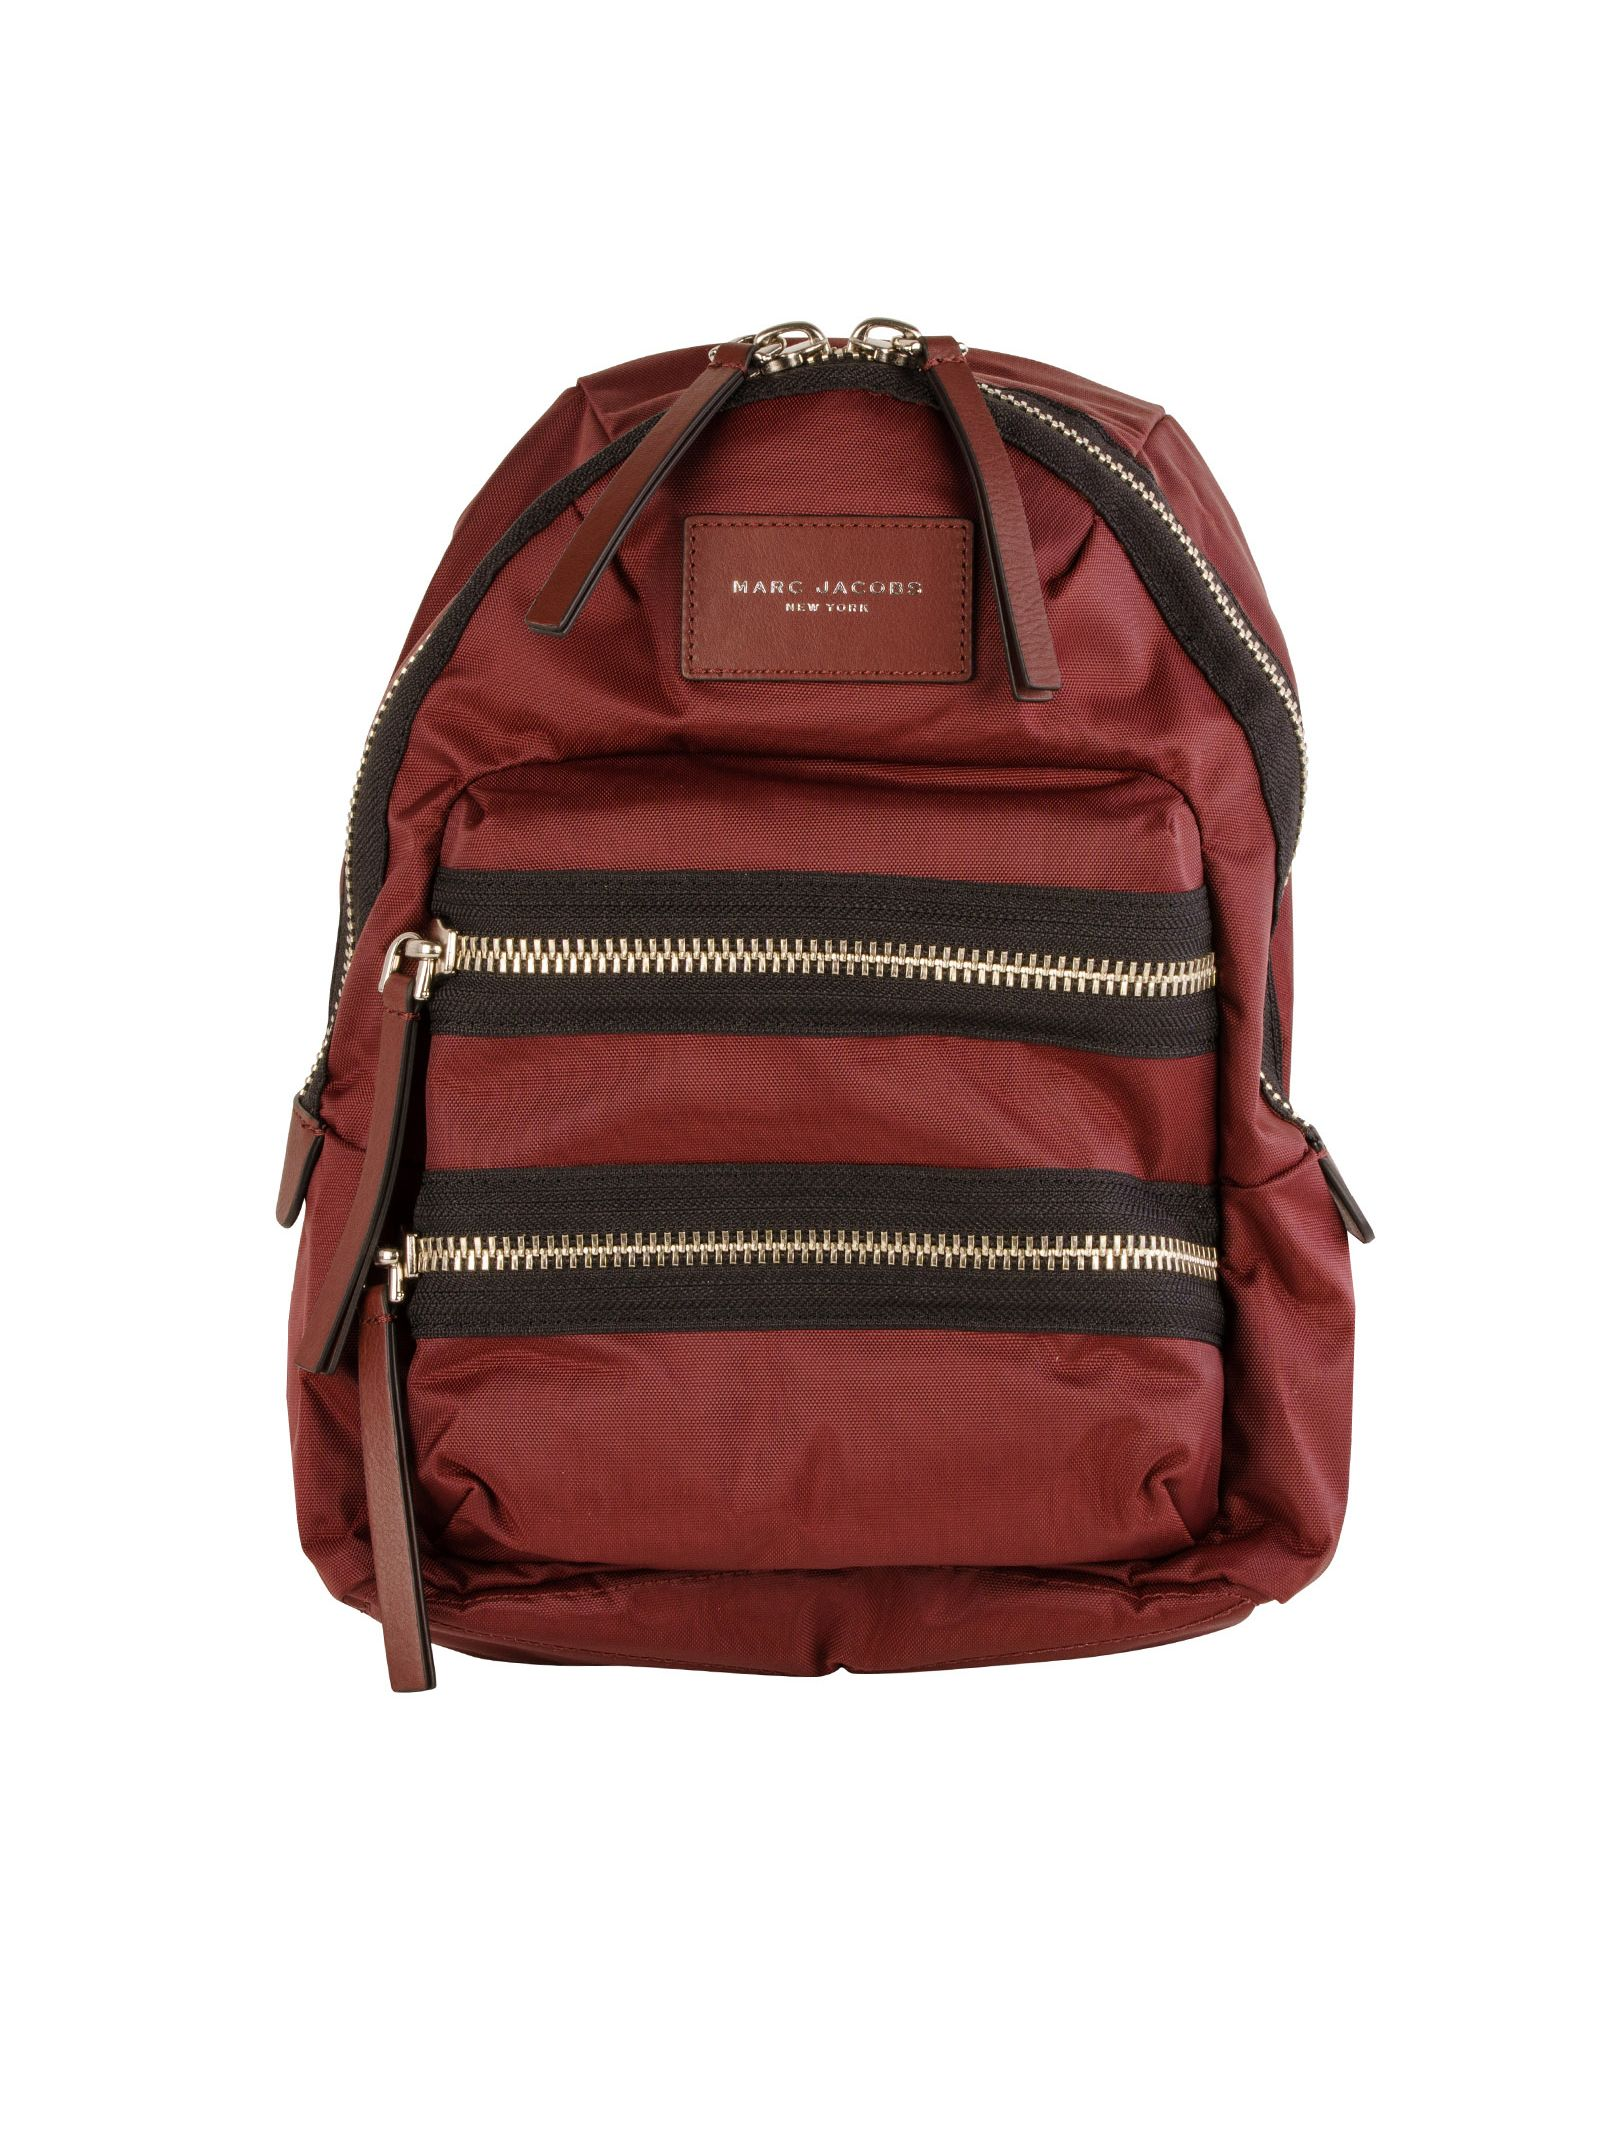 marc jacobs female marc jacobs bordeaux fabric backpack